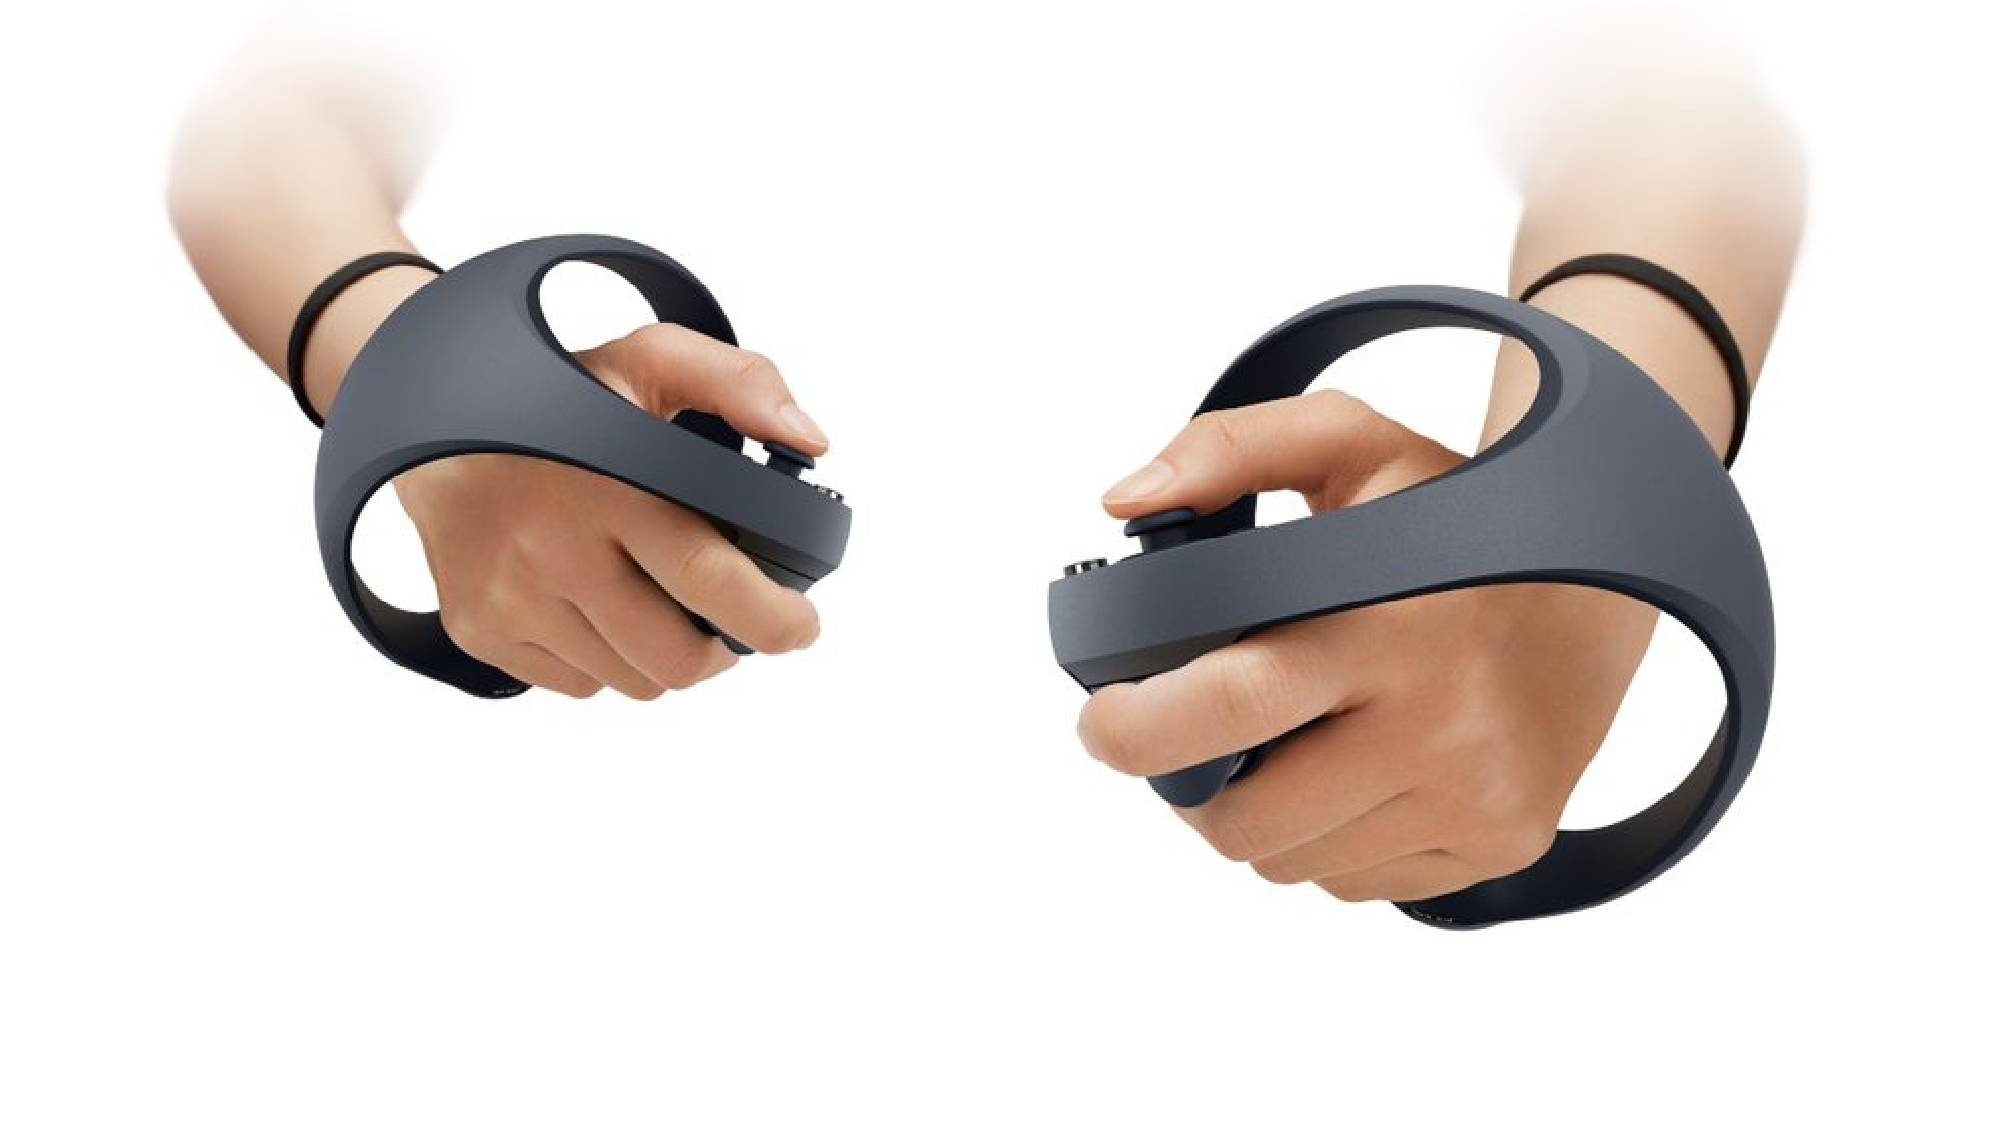 PSVR 2 orb shaped controllers